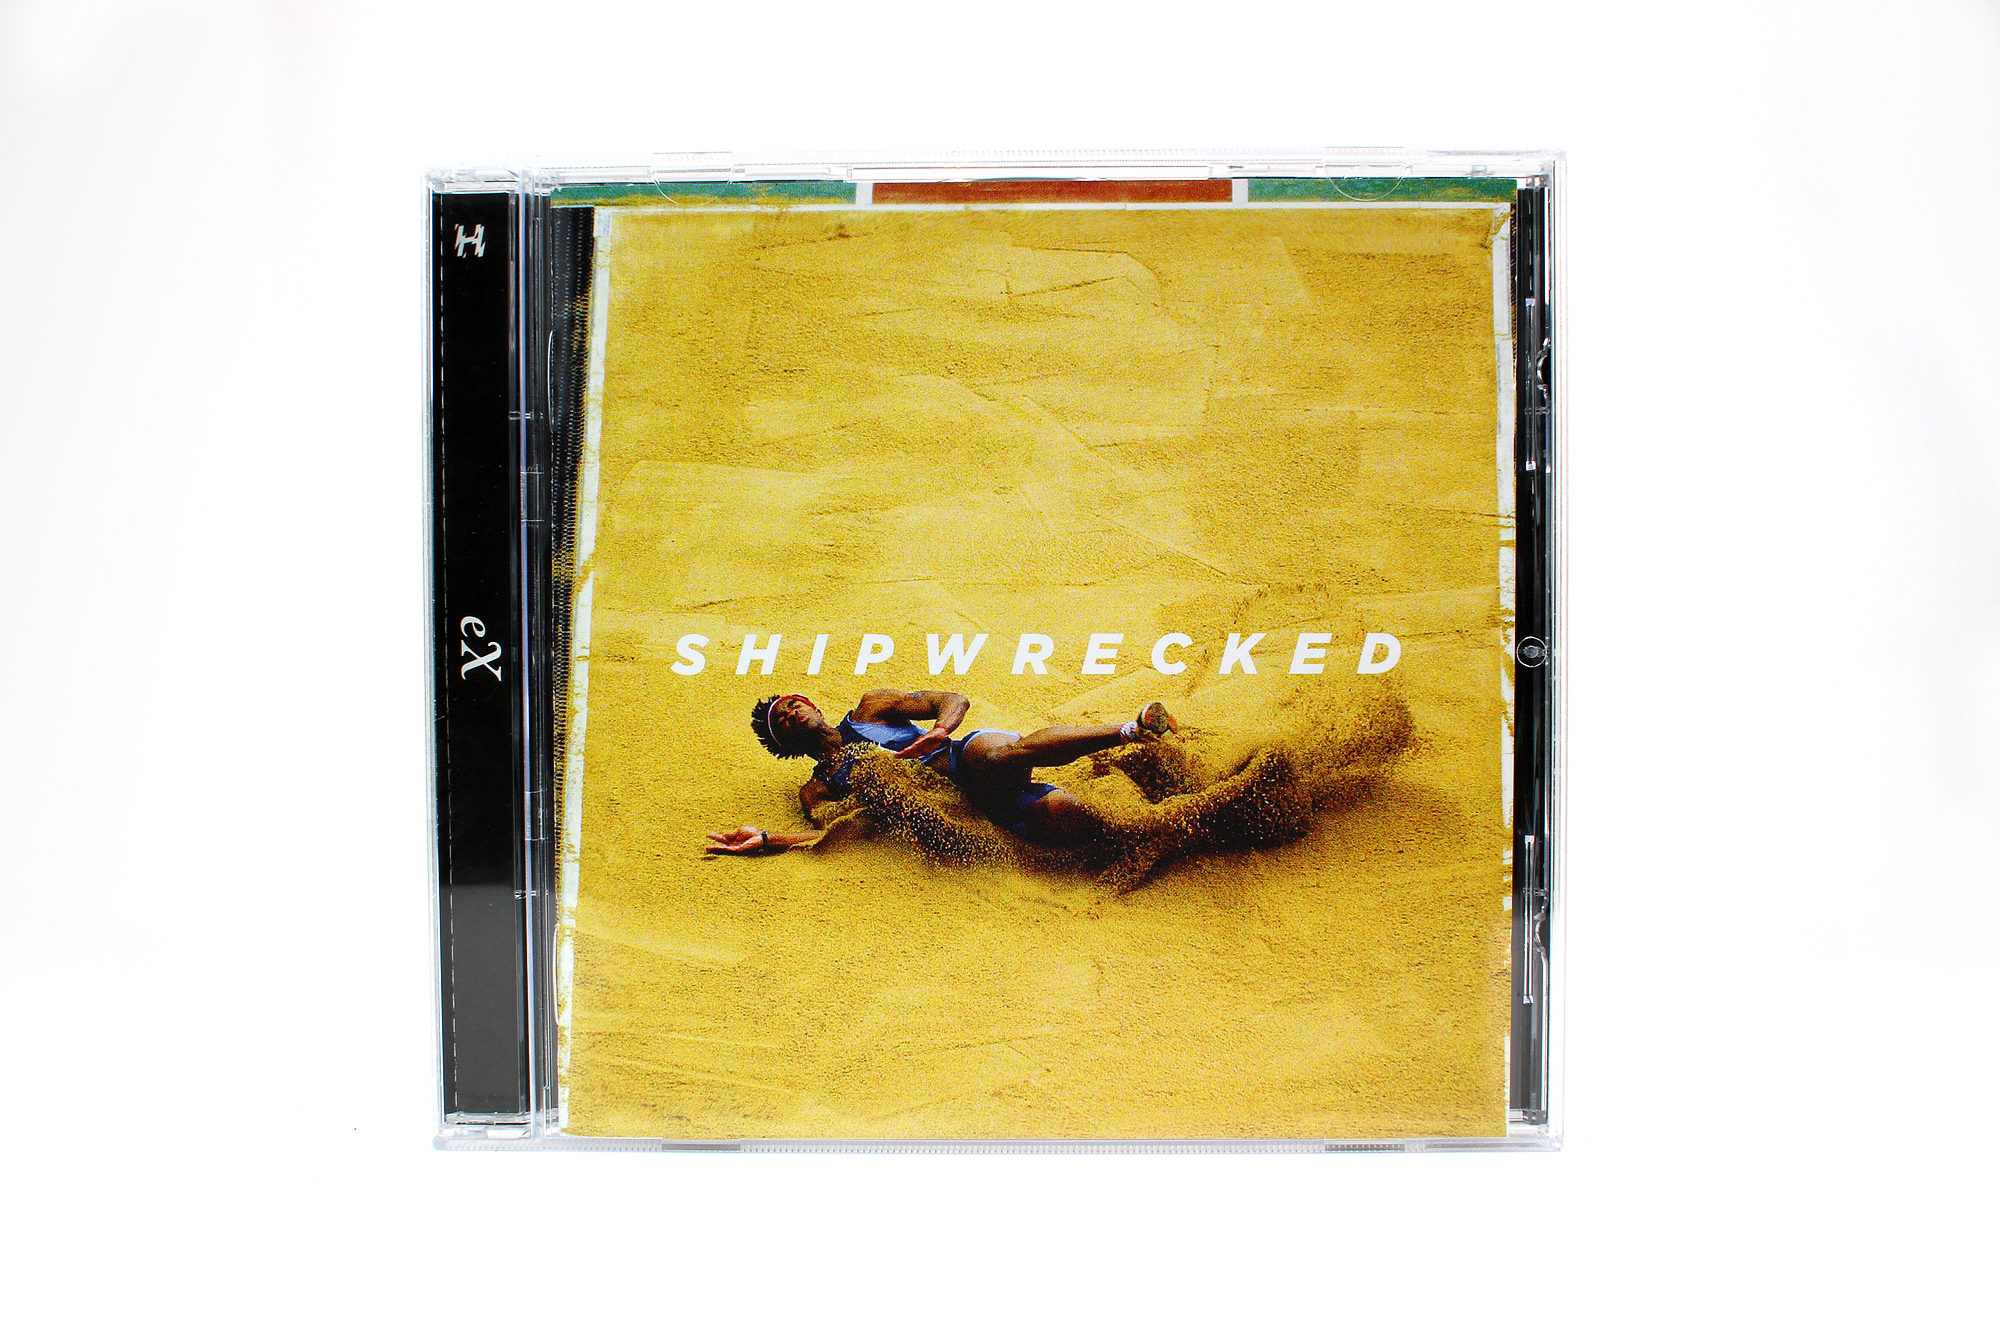 Cover image: eX, Shipwrecked (2011)